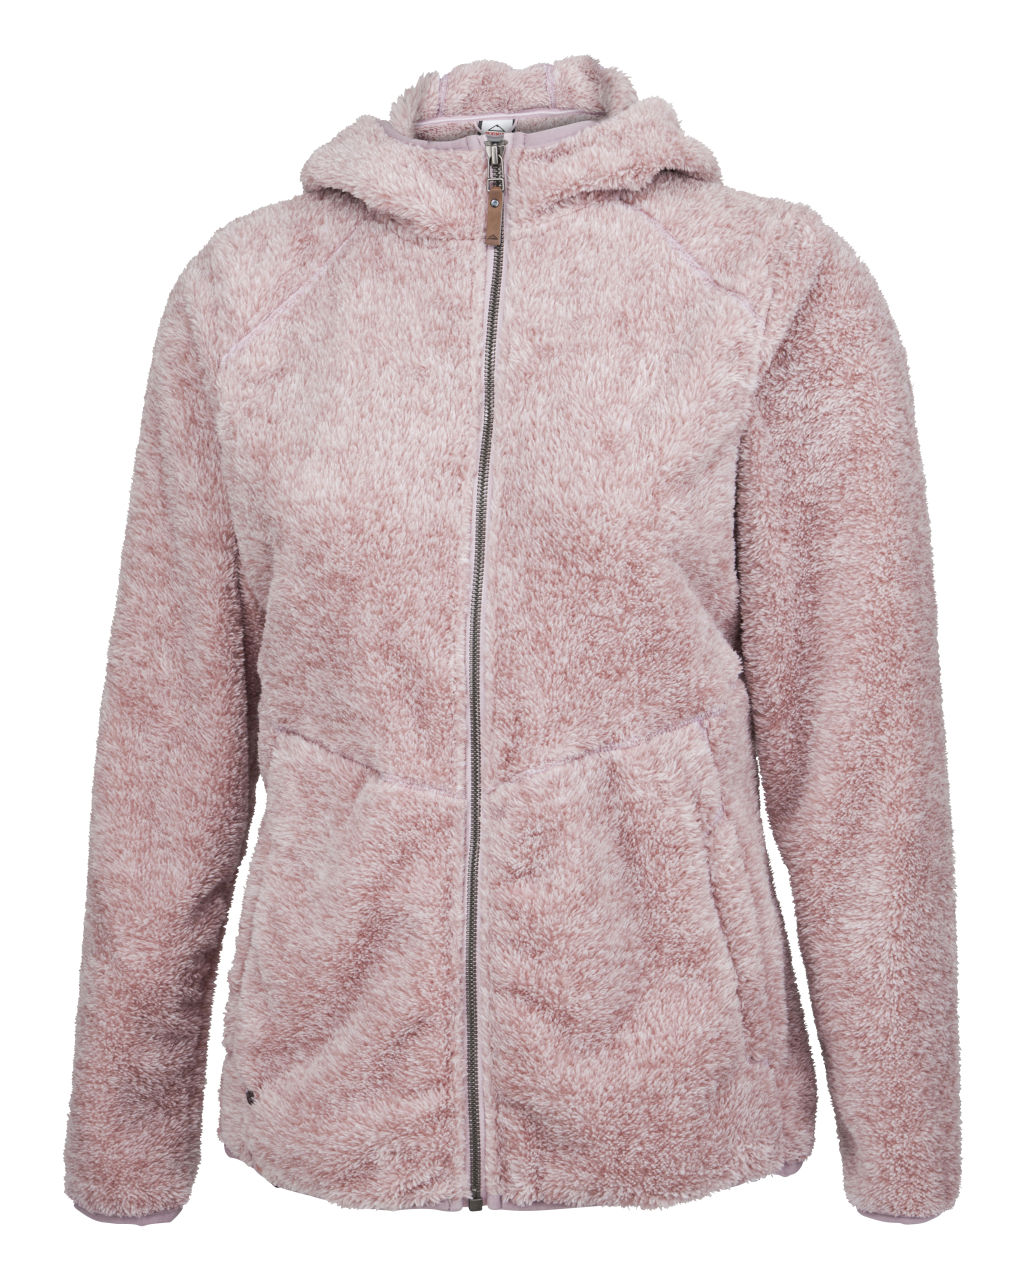 McKINLEY Lily Teddy Fleece Jacket W